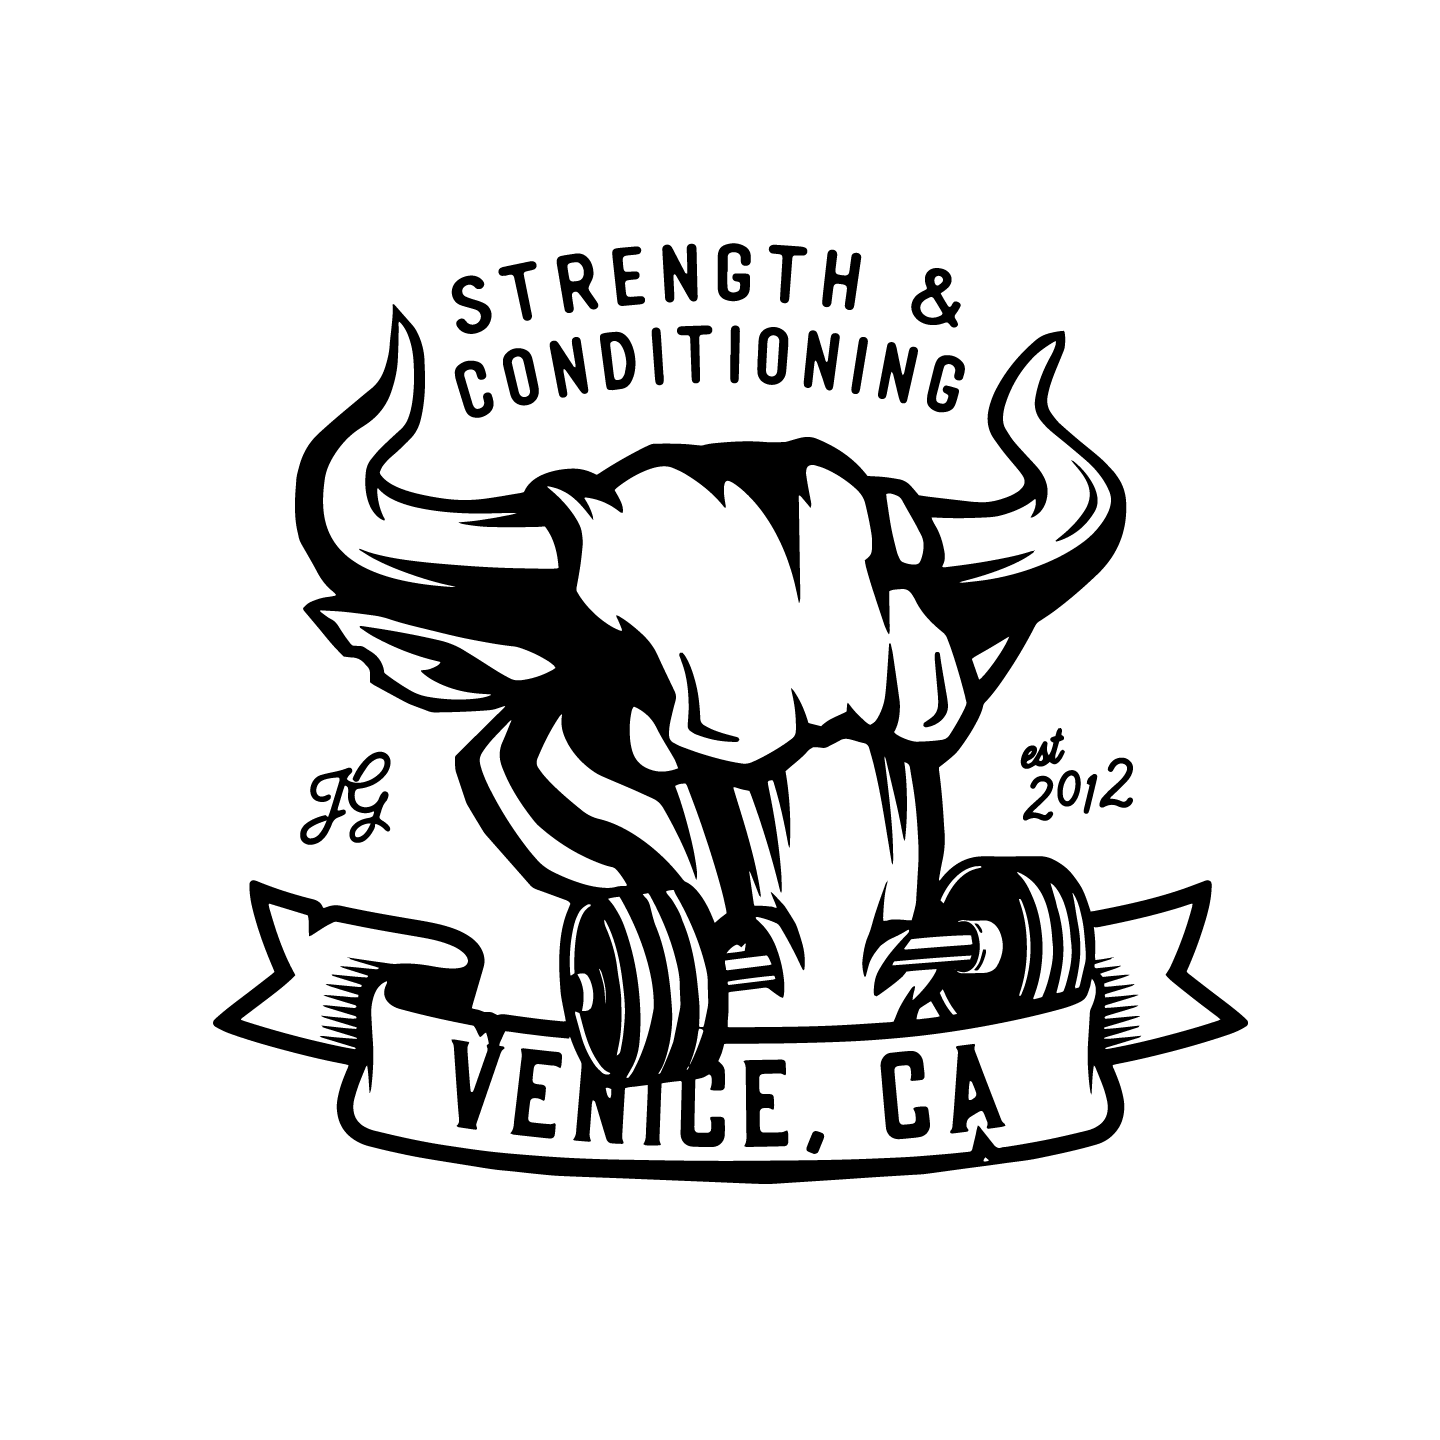 Strength clipart get together.